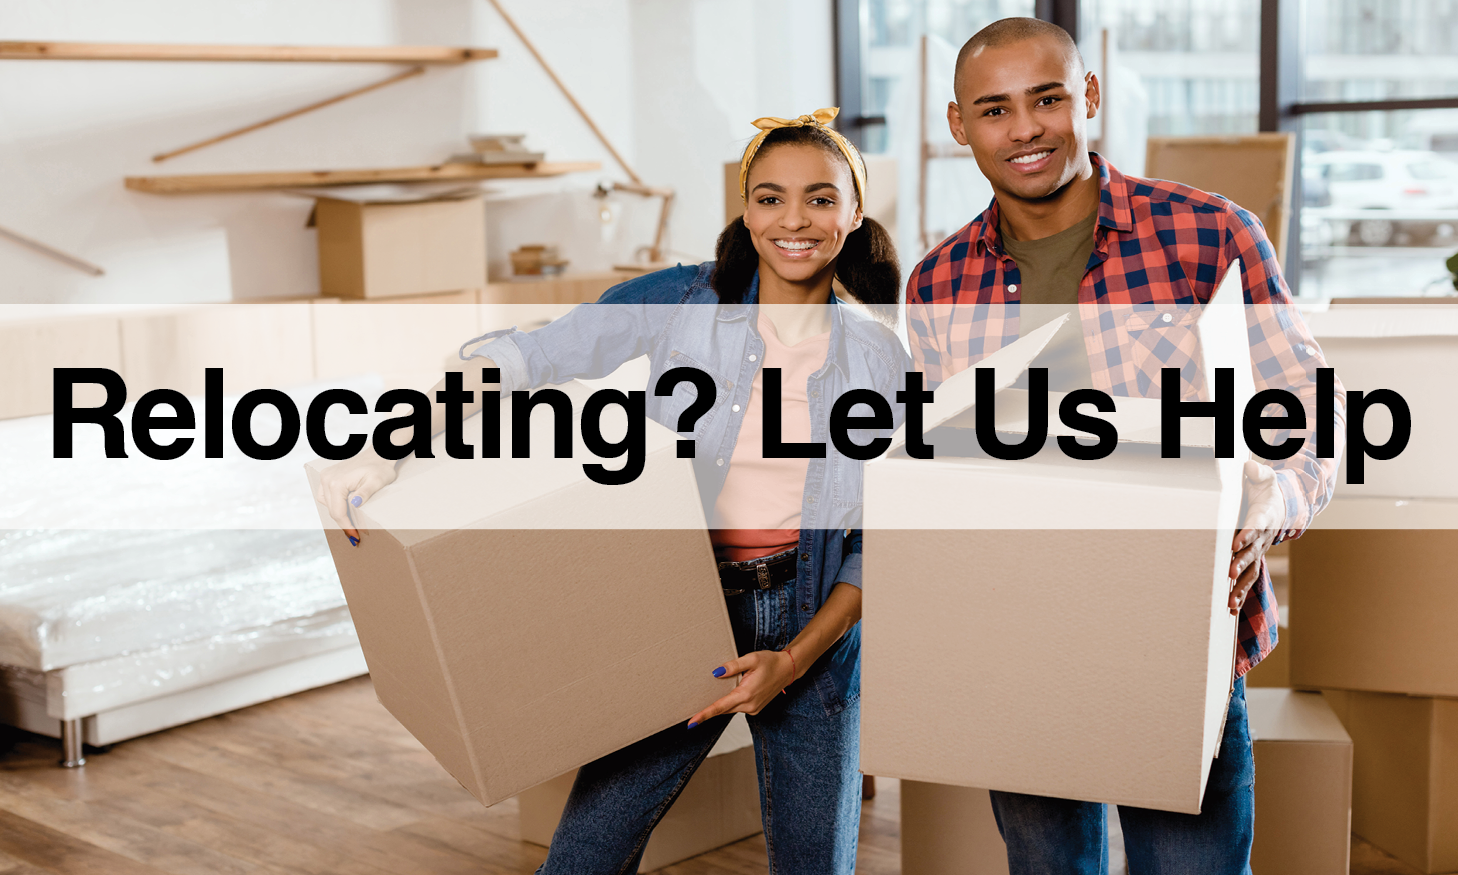 Relocating? Let us help